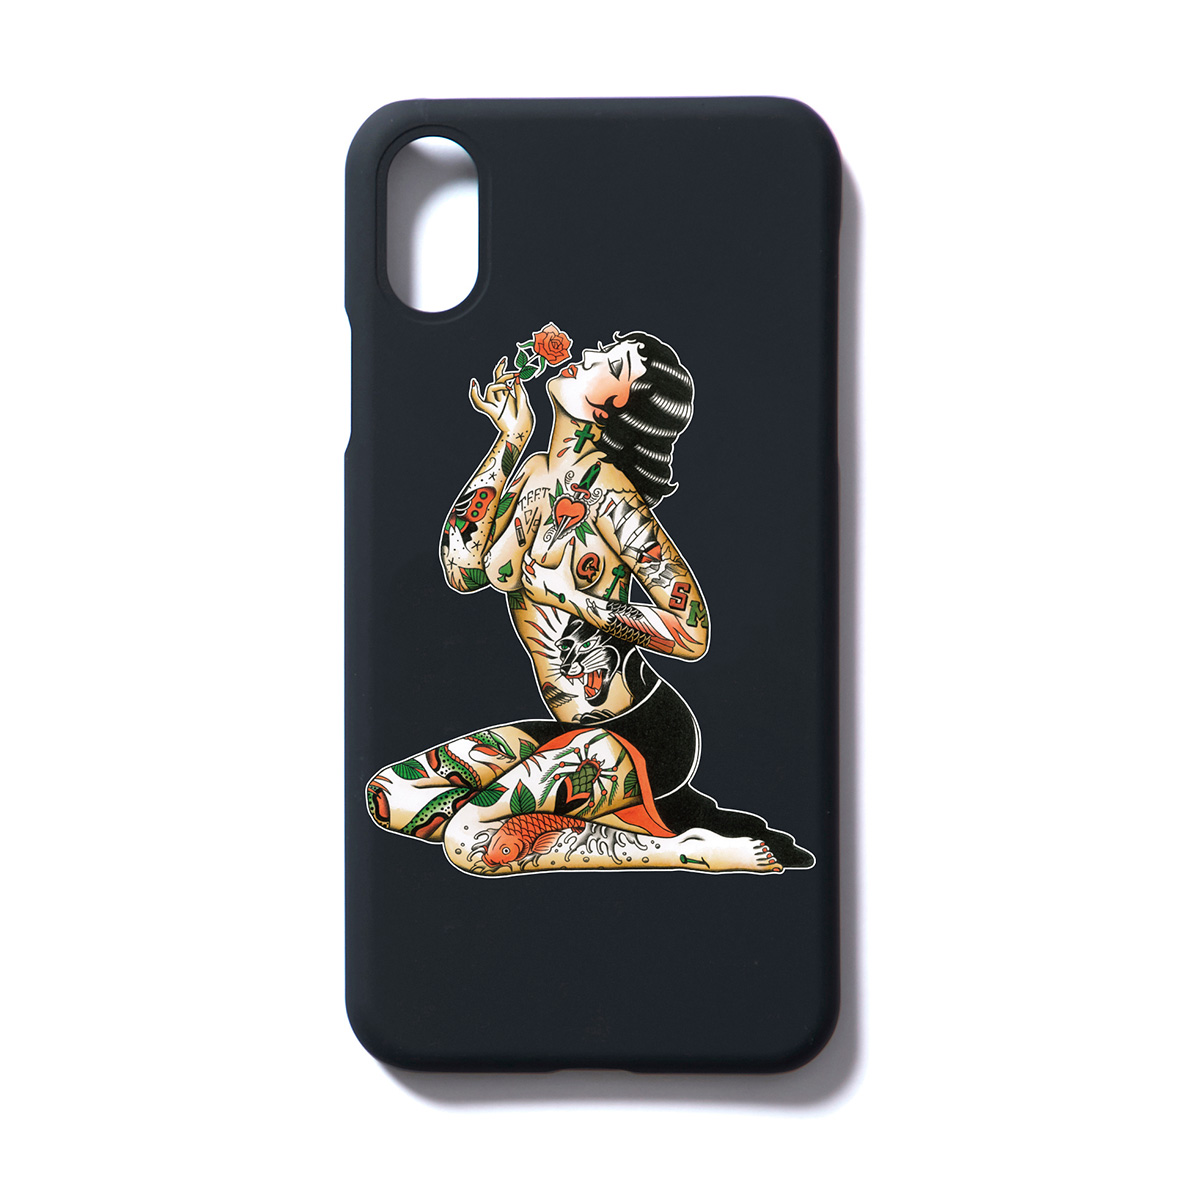 VARGAS iPhone CASE